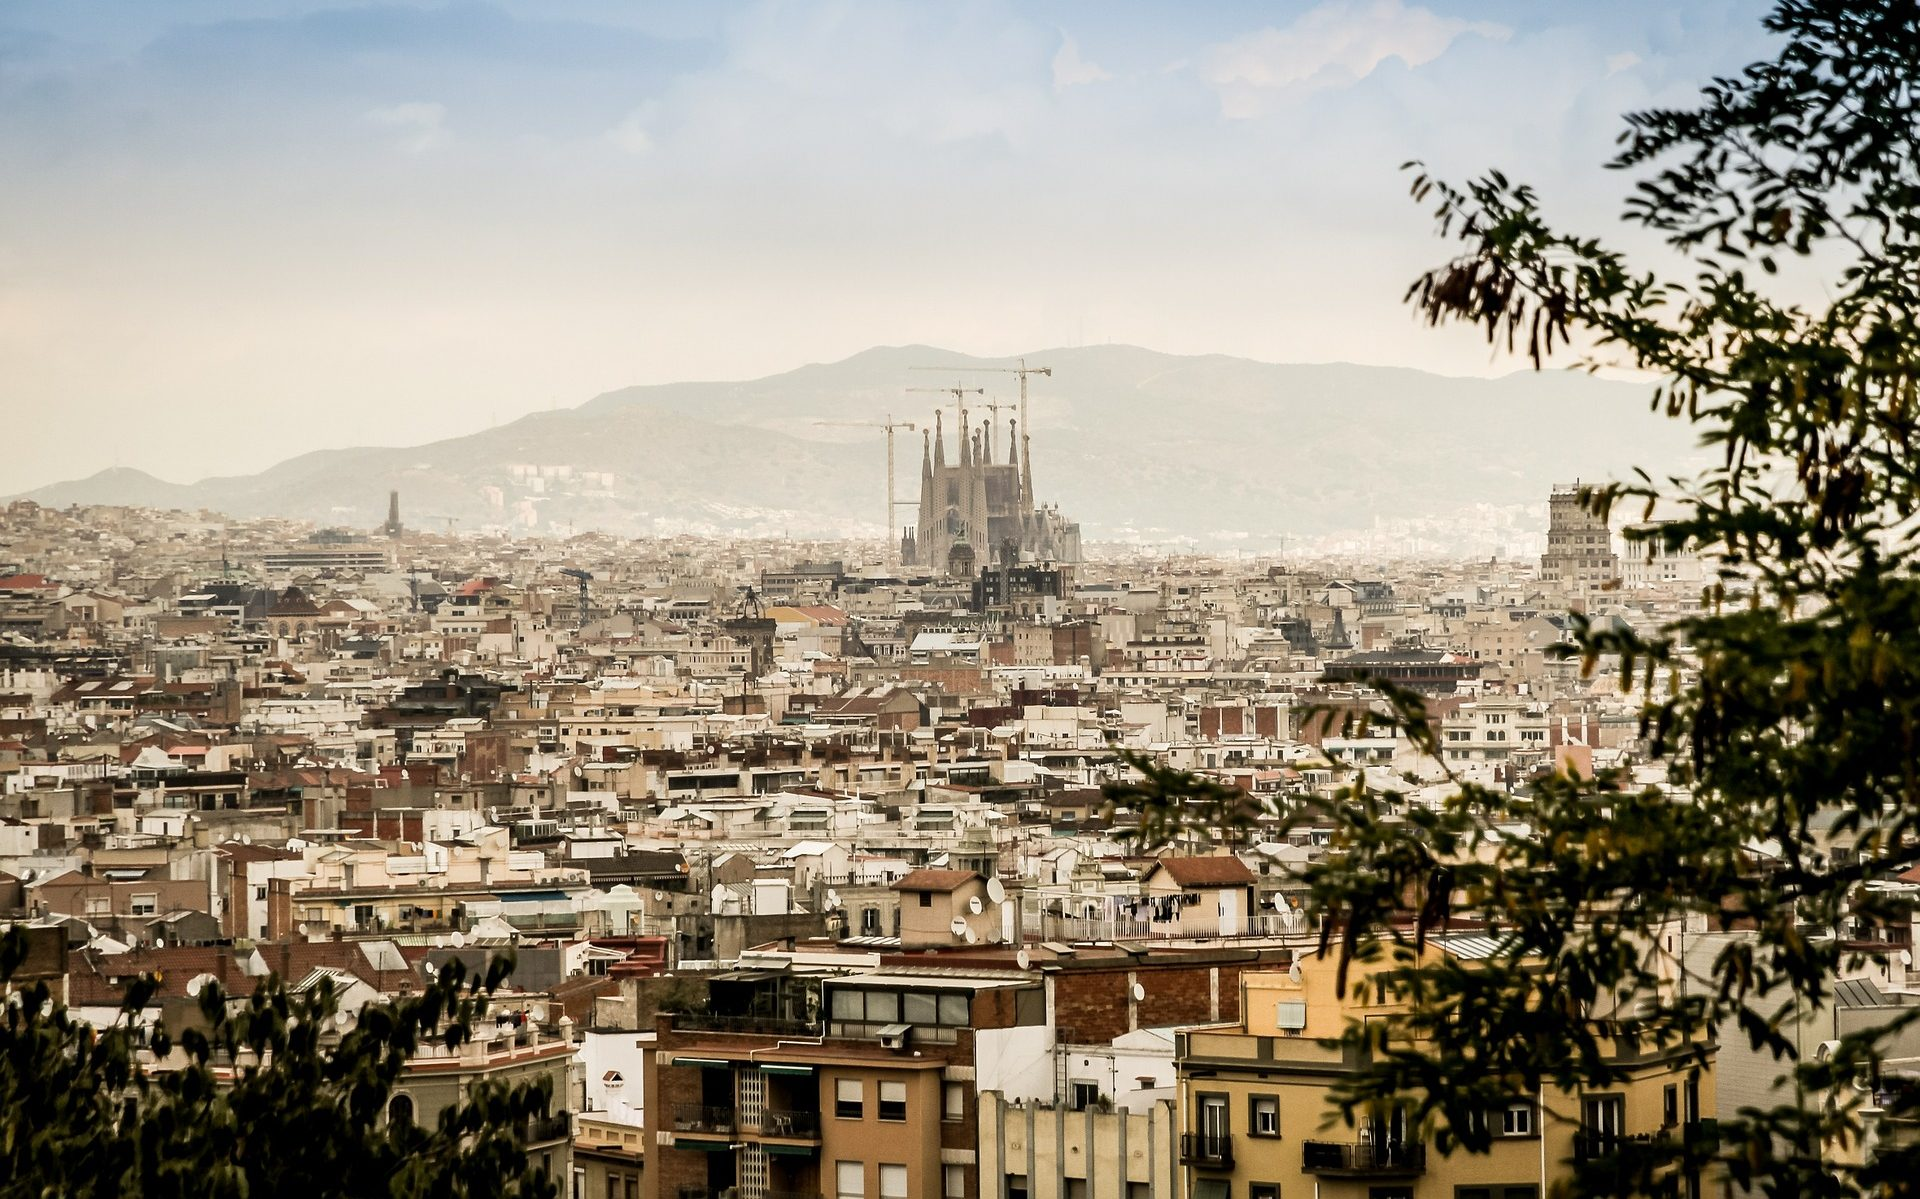 Panorama view of sagrada familia